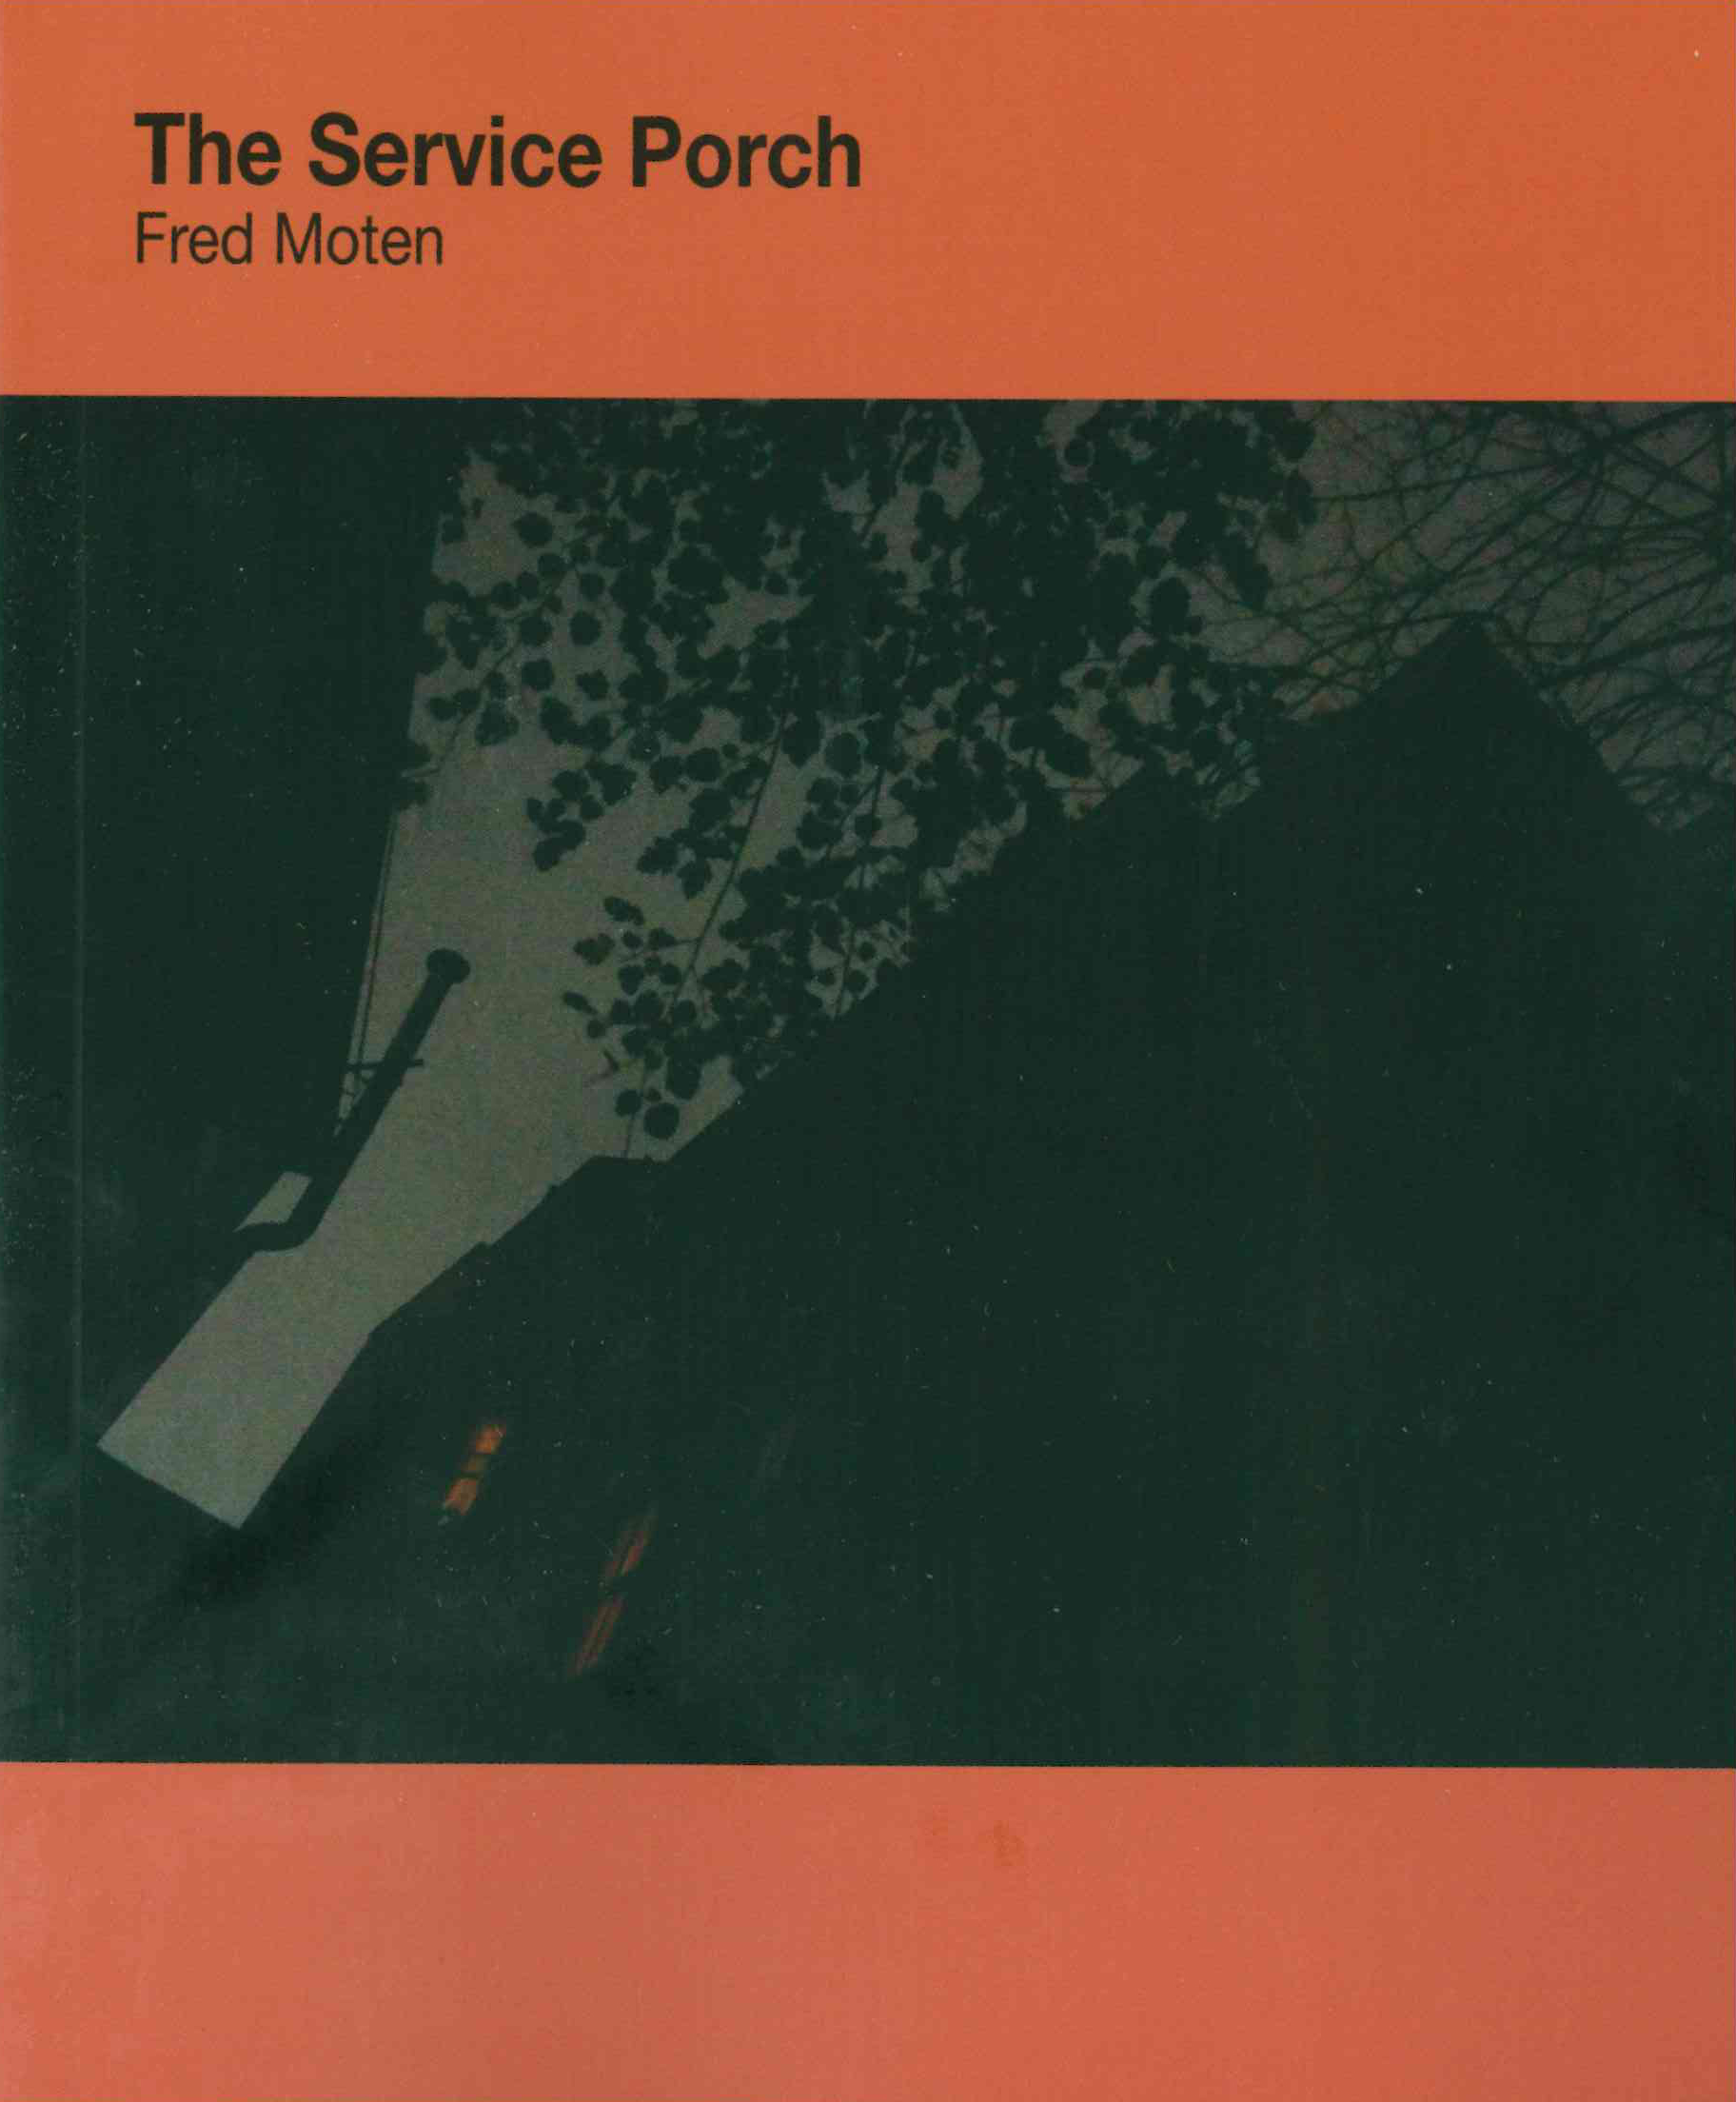 The Service Porch Fred Moten